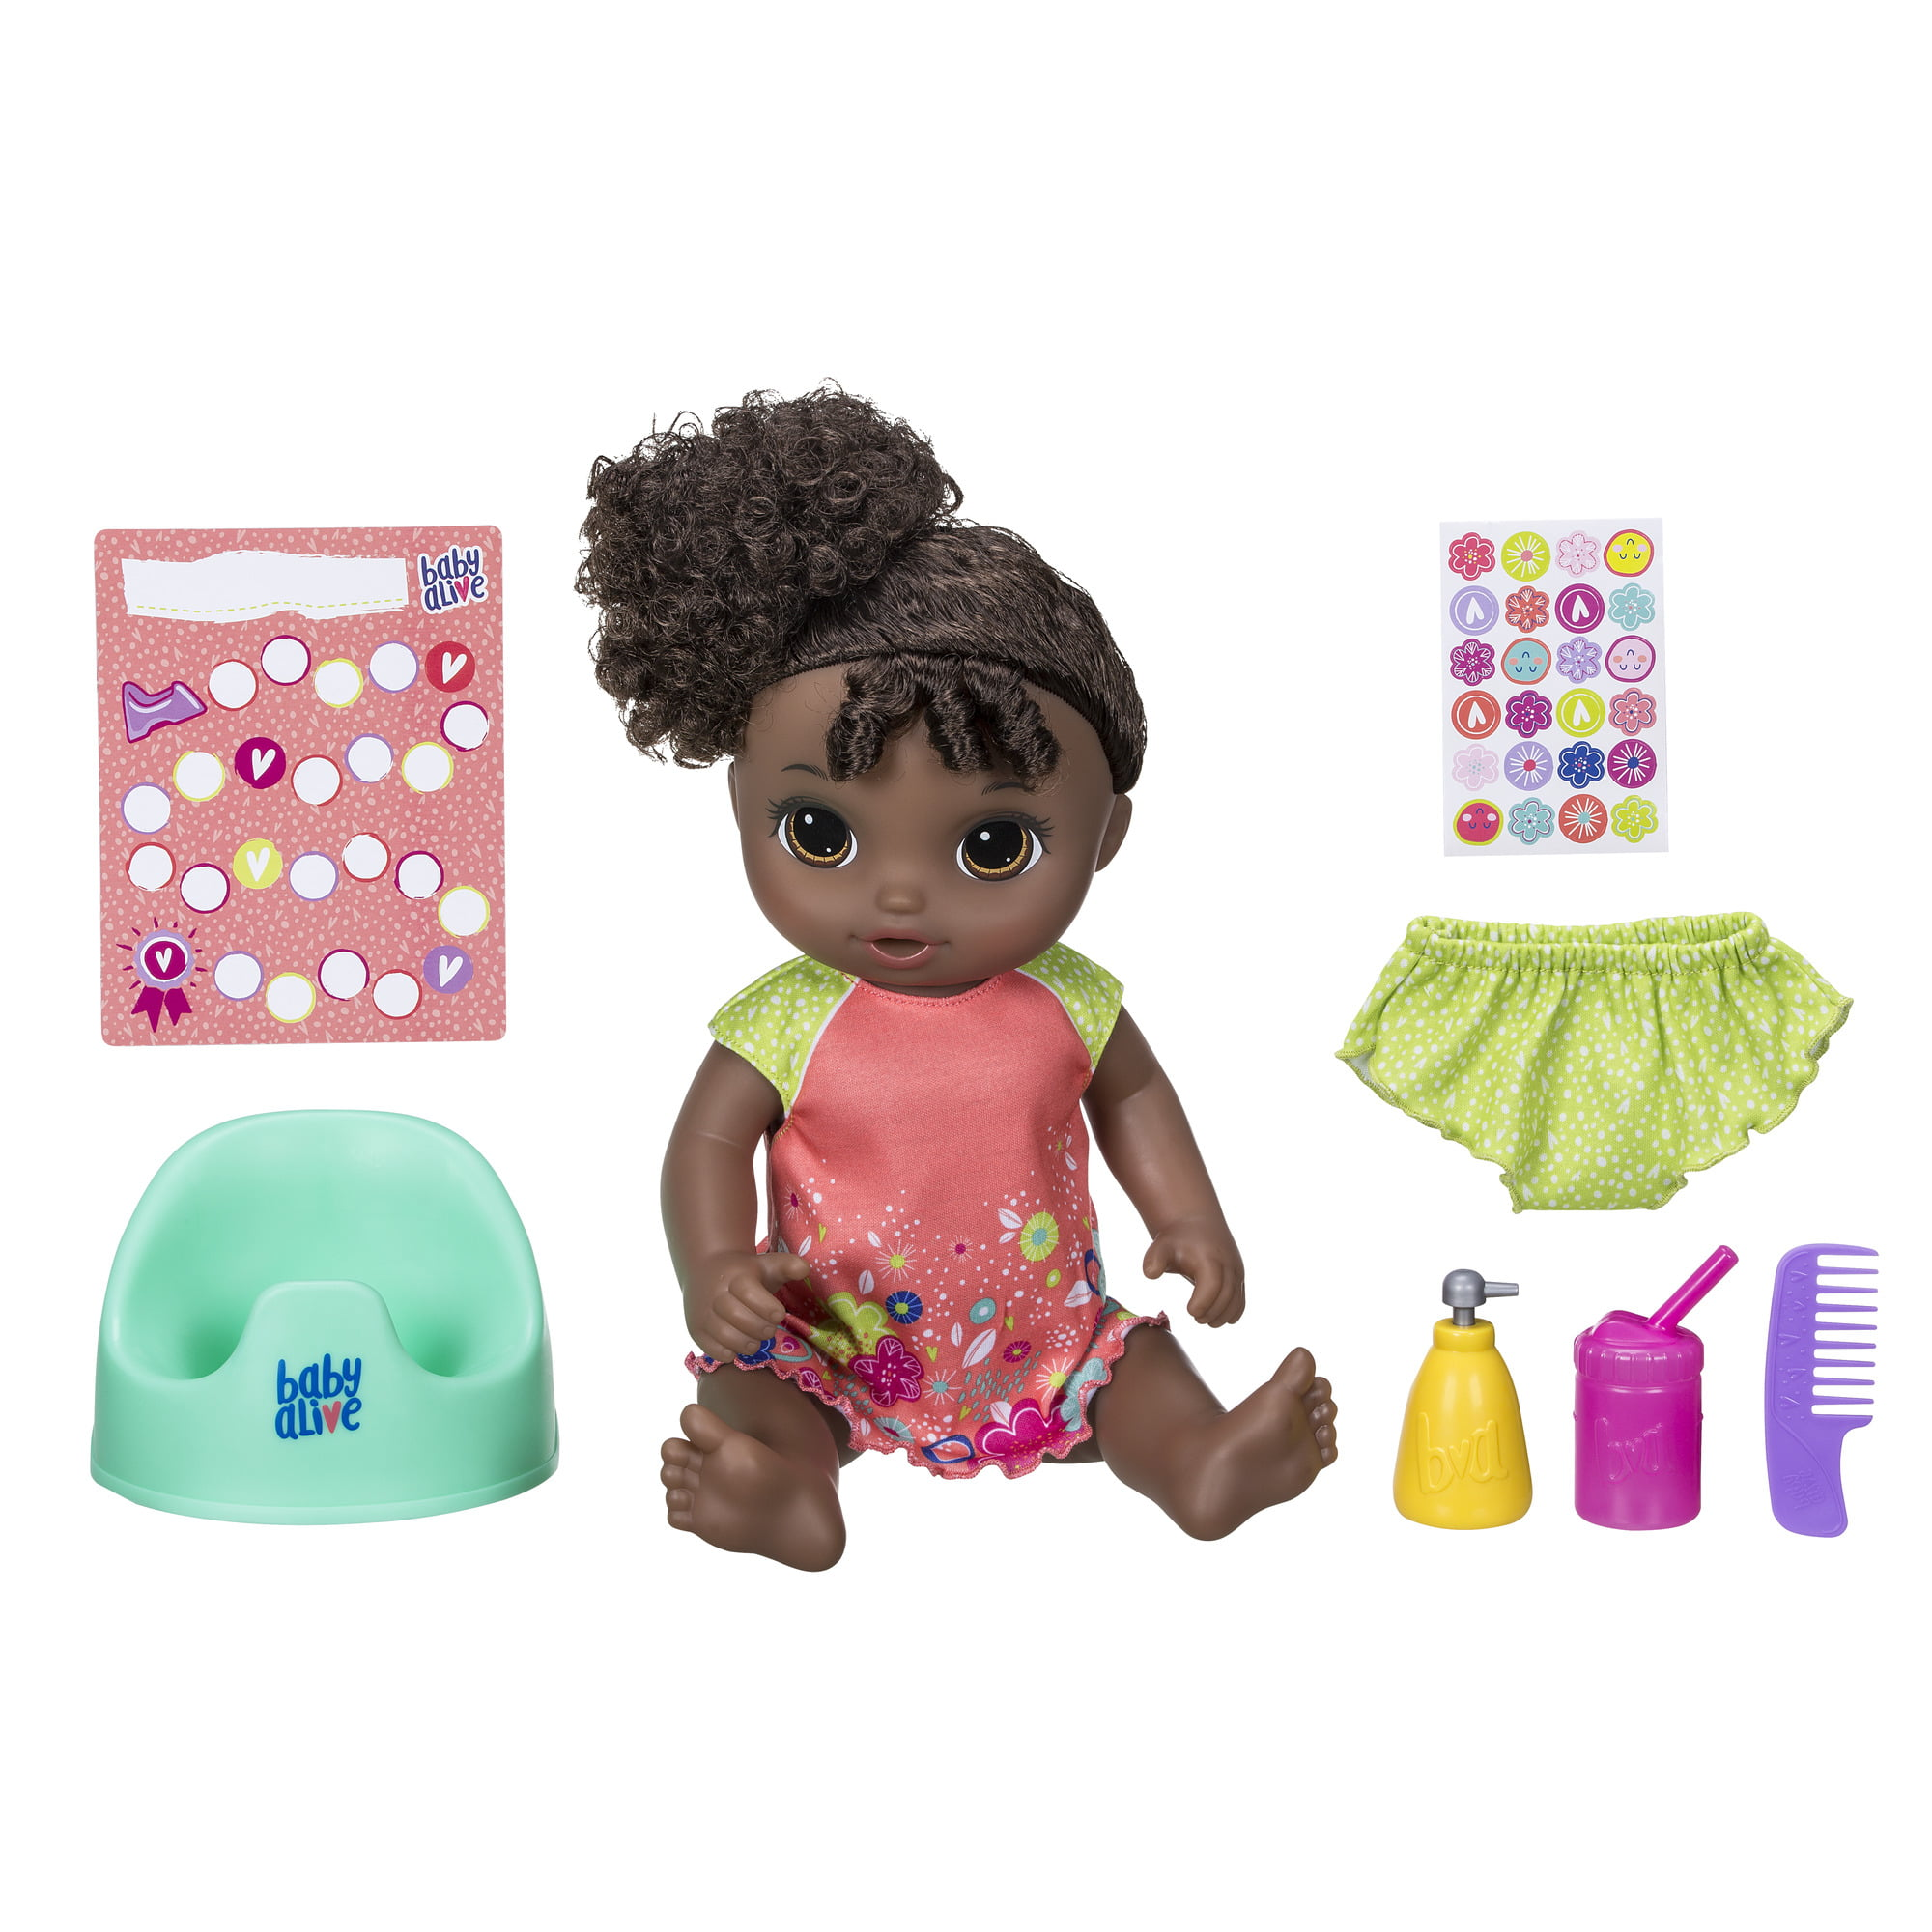 Baby Alive Potty Dance Baby: Talking Baby Doll with Black Curly Hair by Hasbro